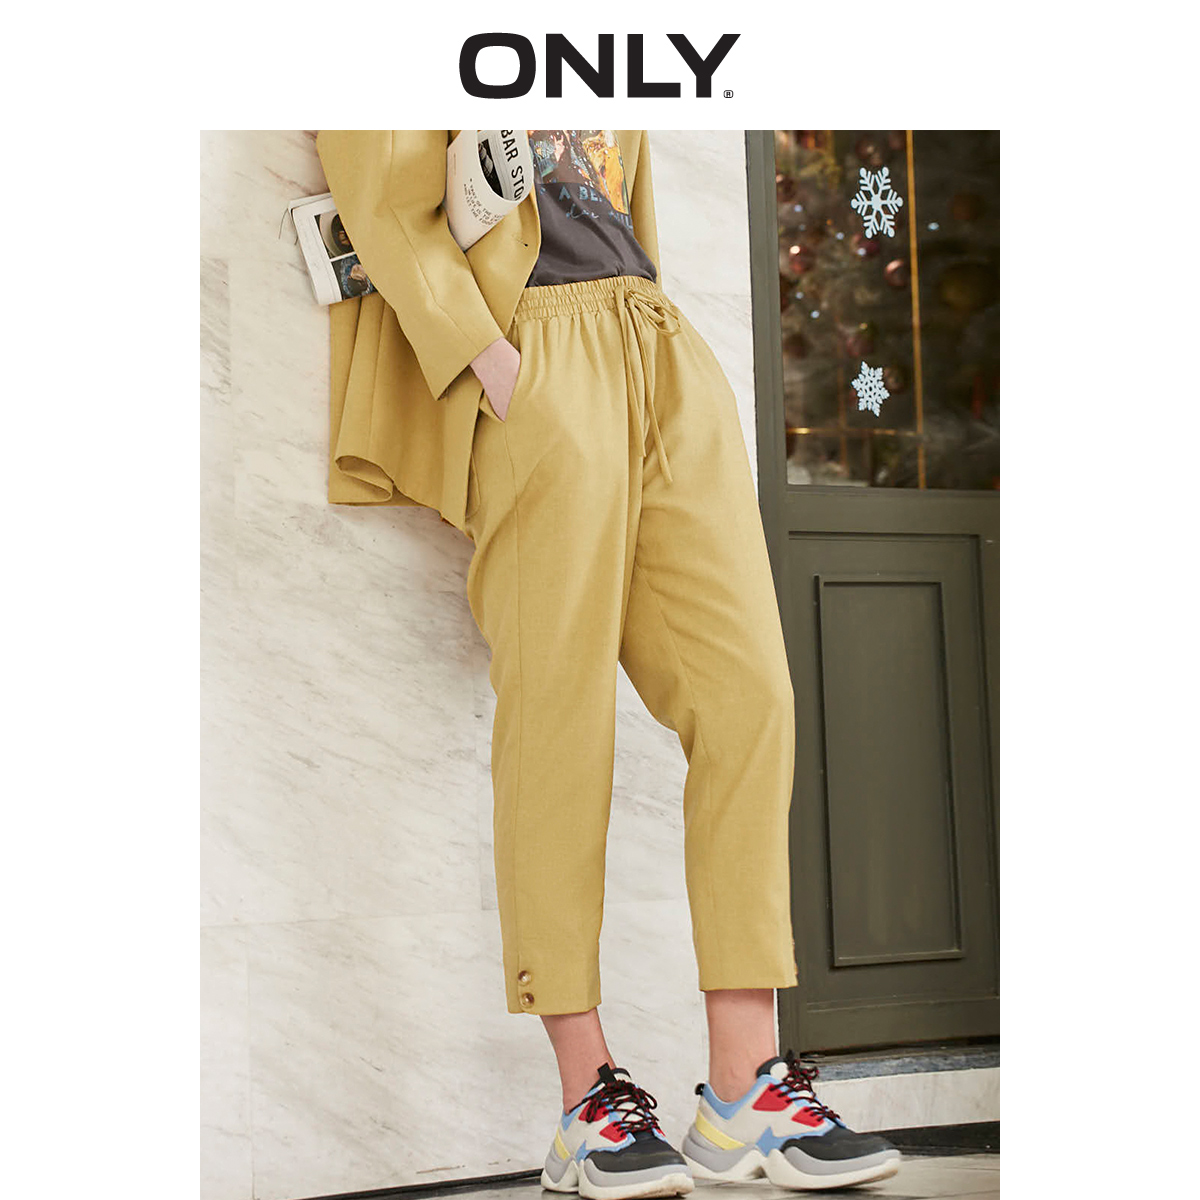 ONLY 2019 Spring Summer Women's Loose Fit High-rise Casual Crop Pants |119150529